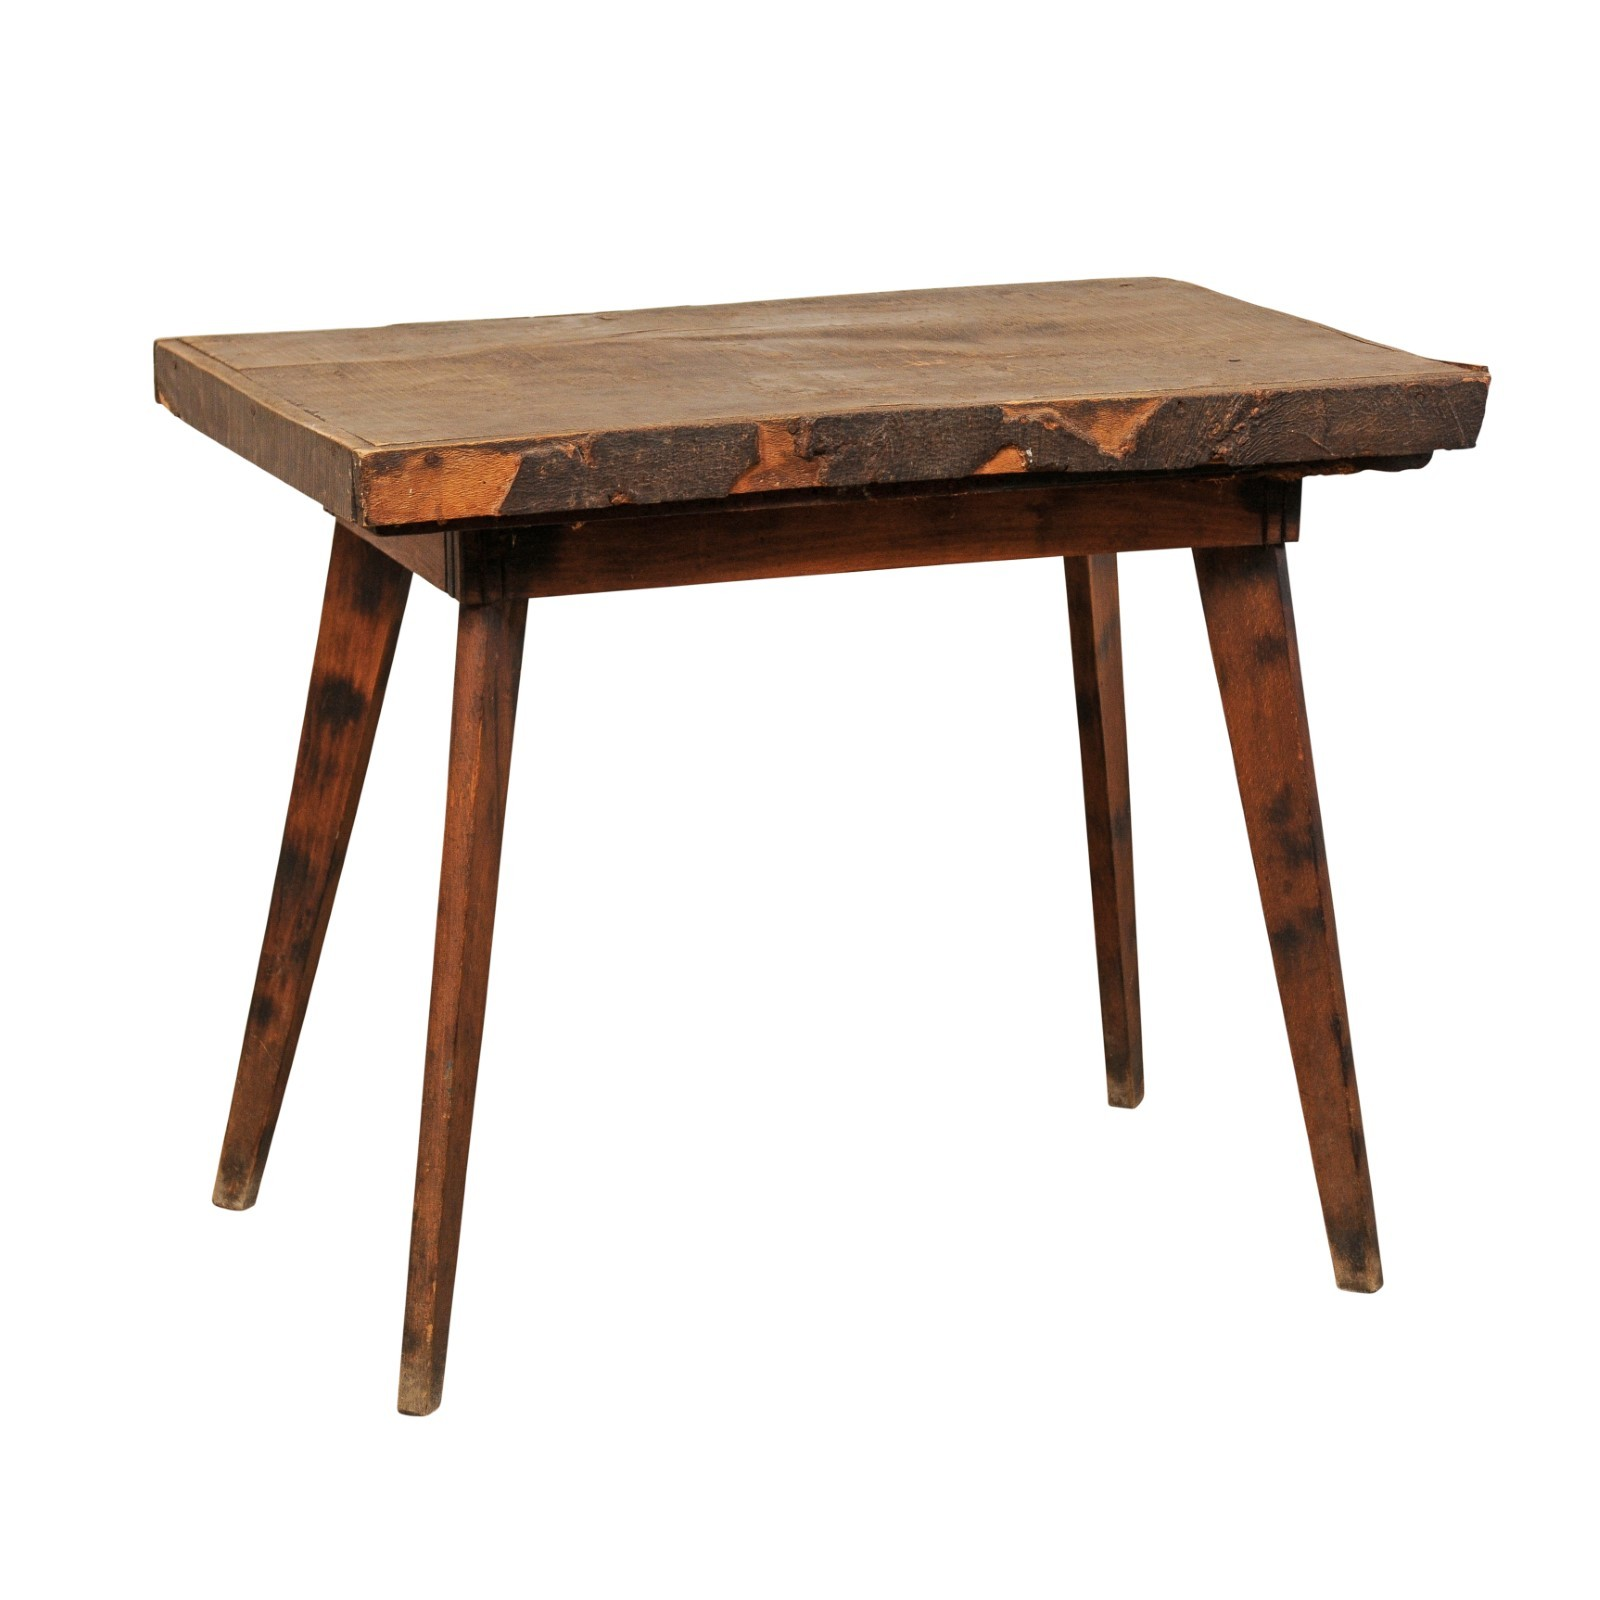 Rustic Spanish Wood Table, Mid 20th C.